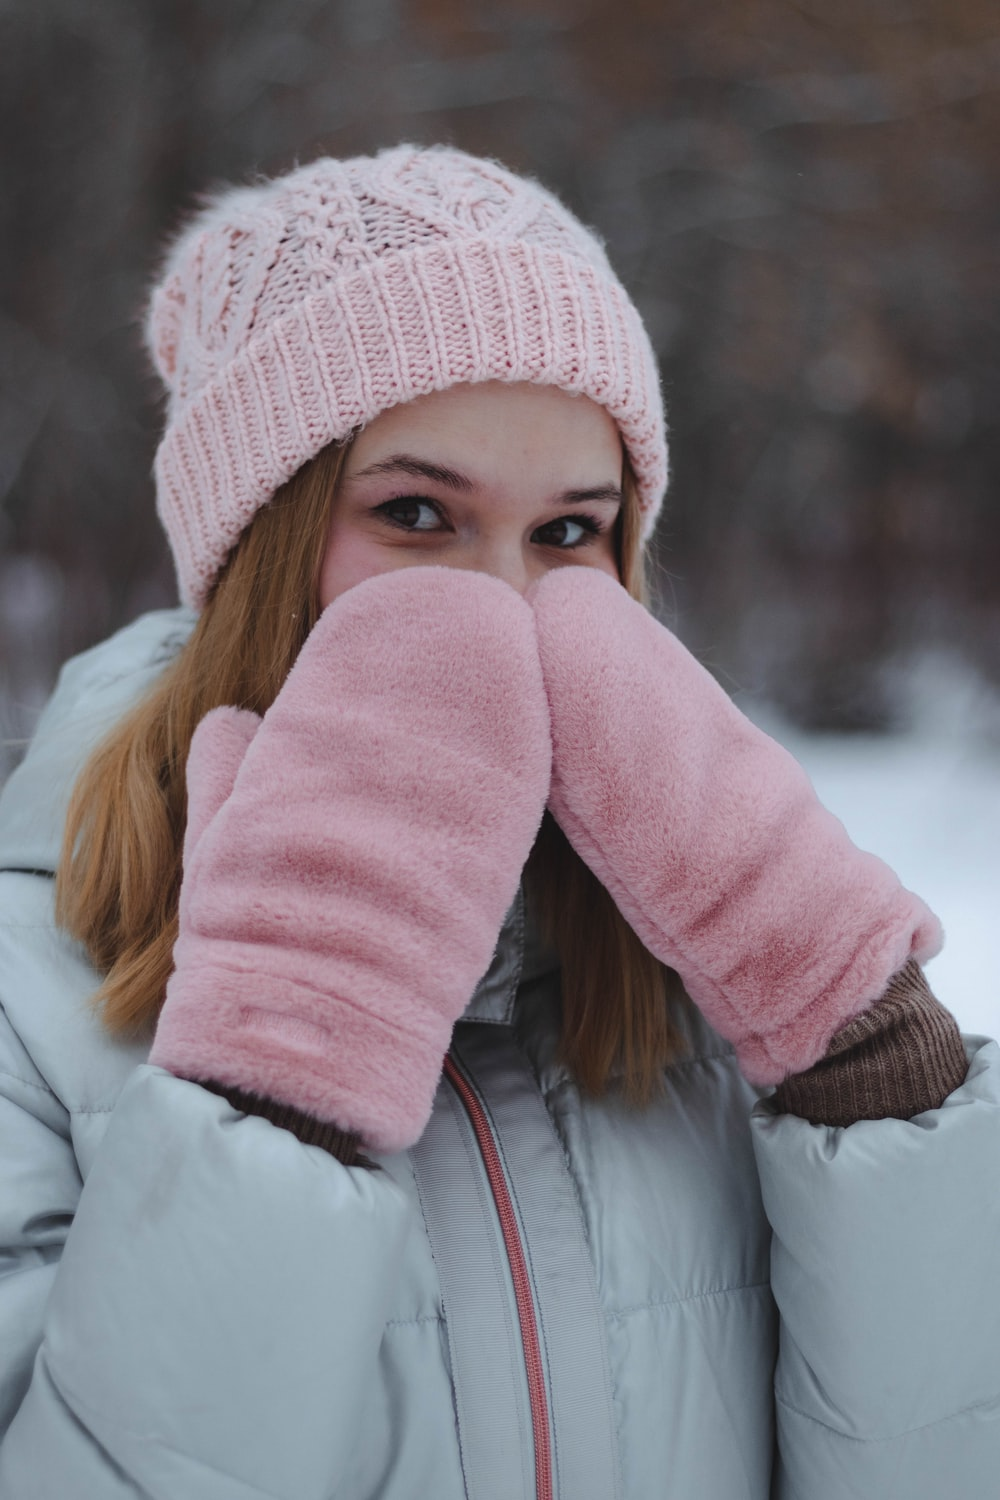 woman in white jacket and pink knit cap